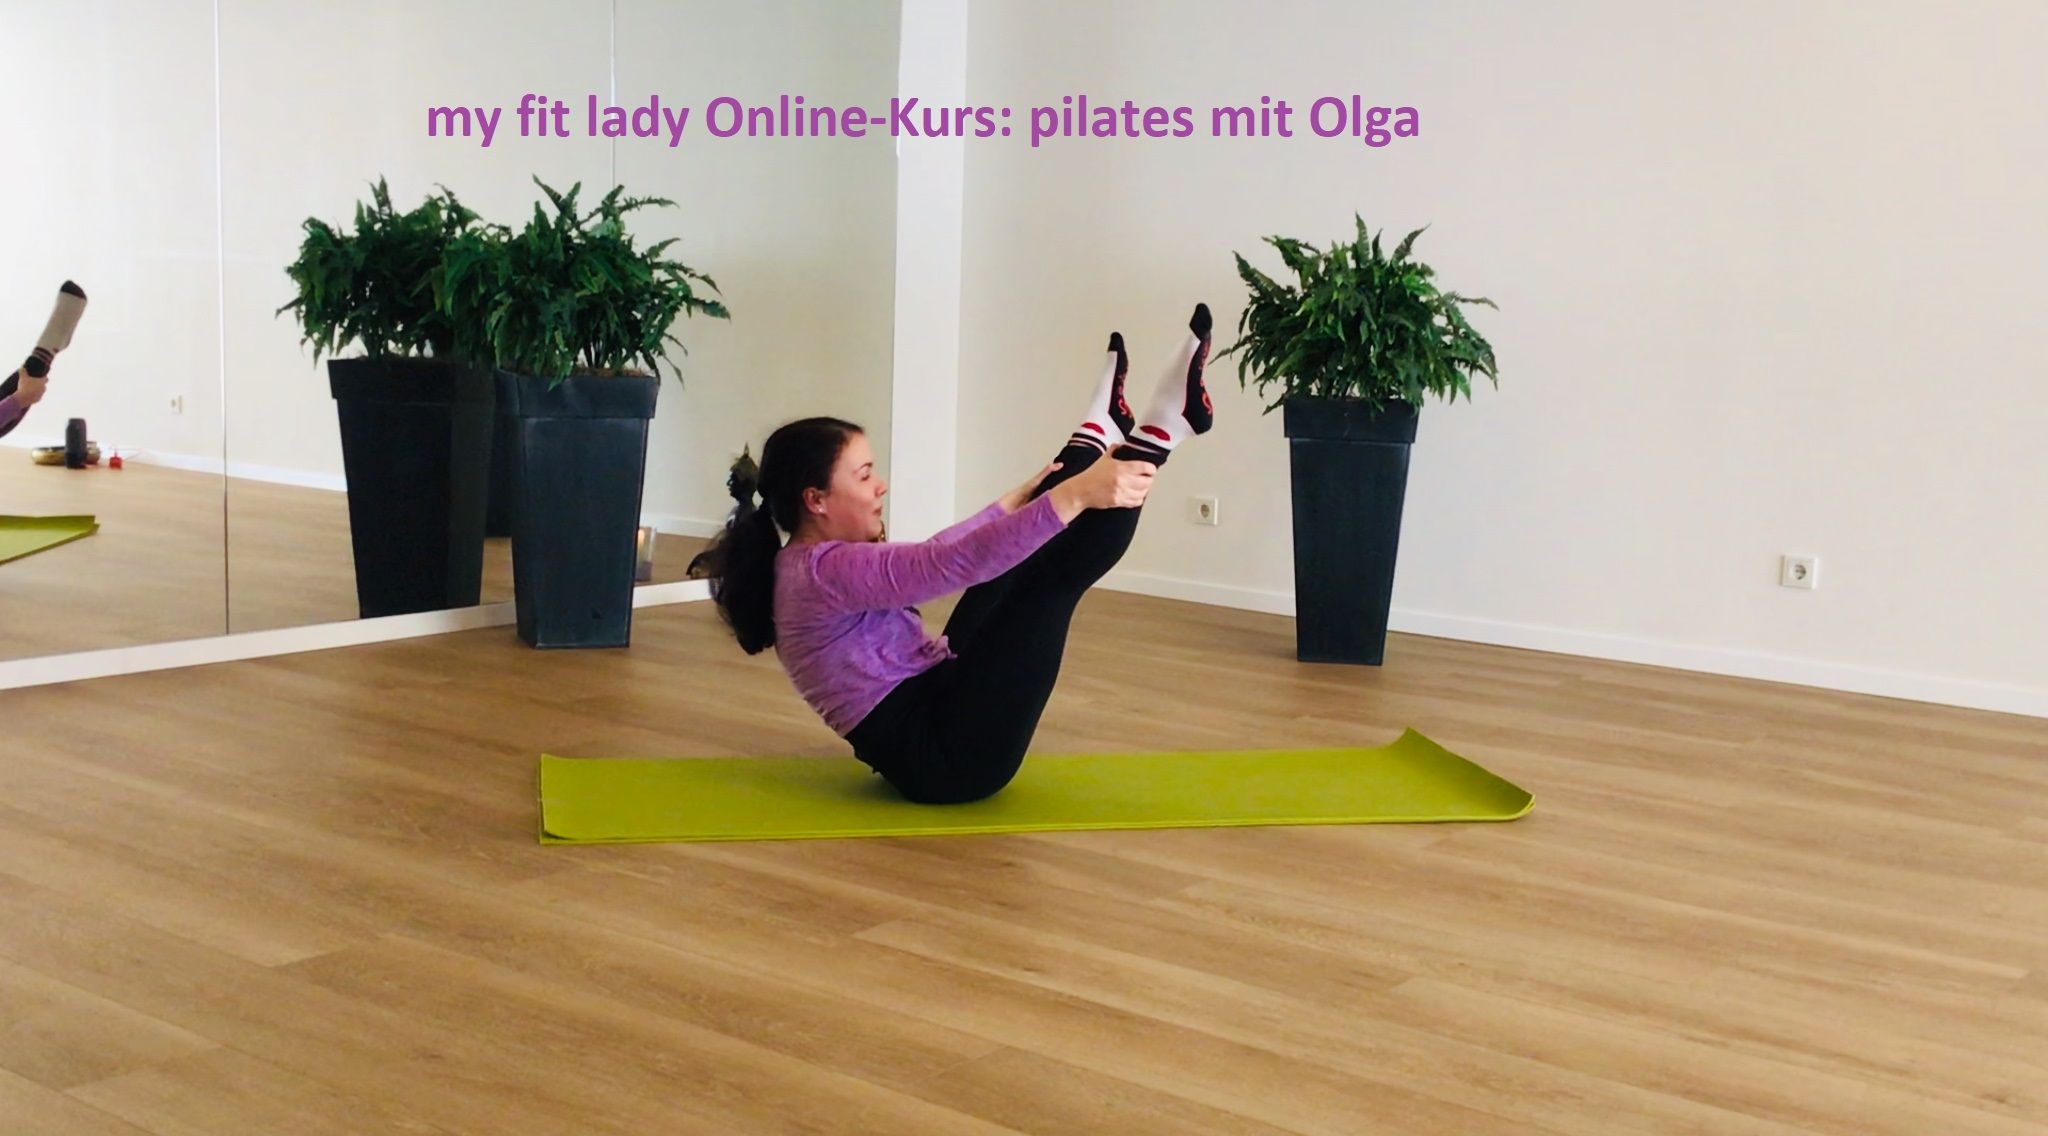 my fit lady, pilates mit Olga